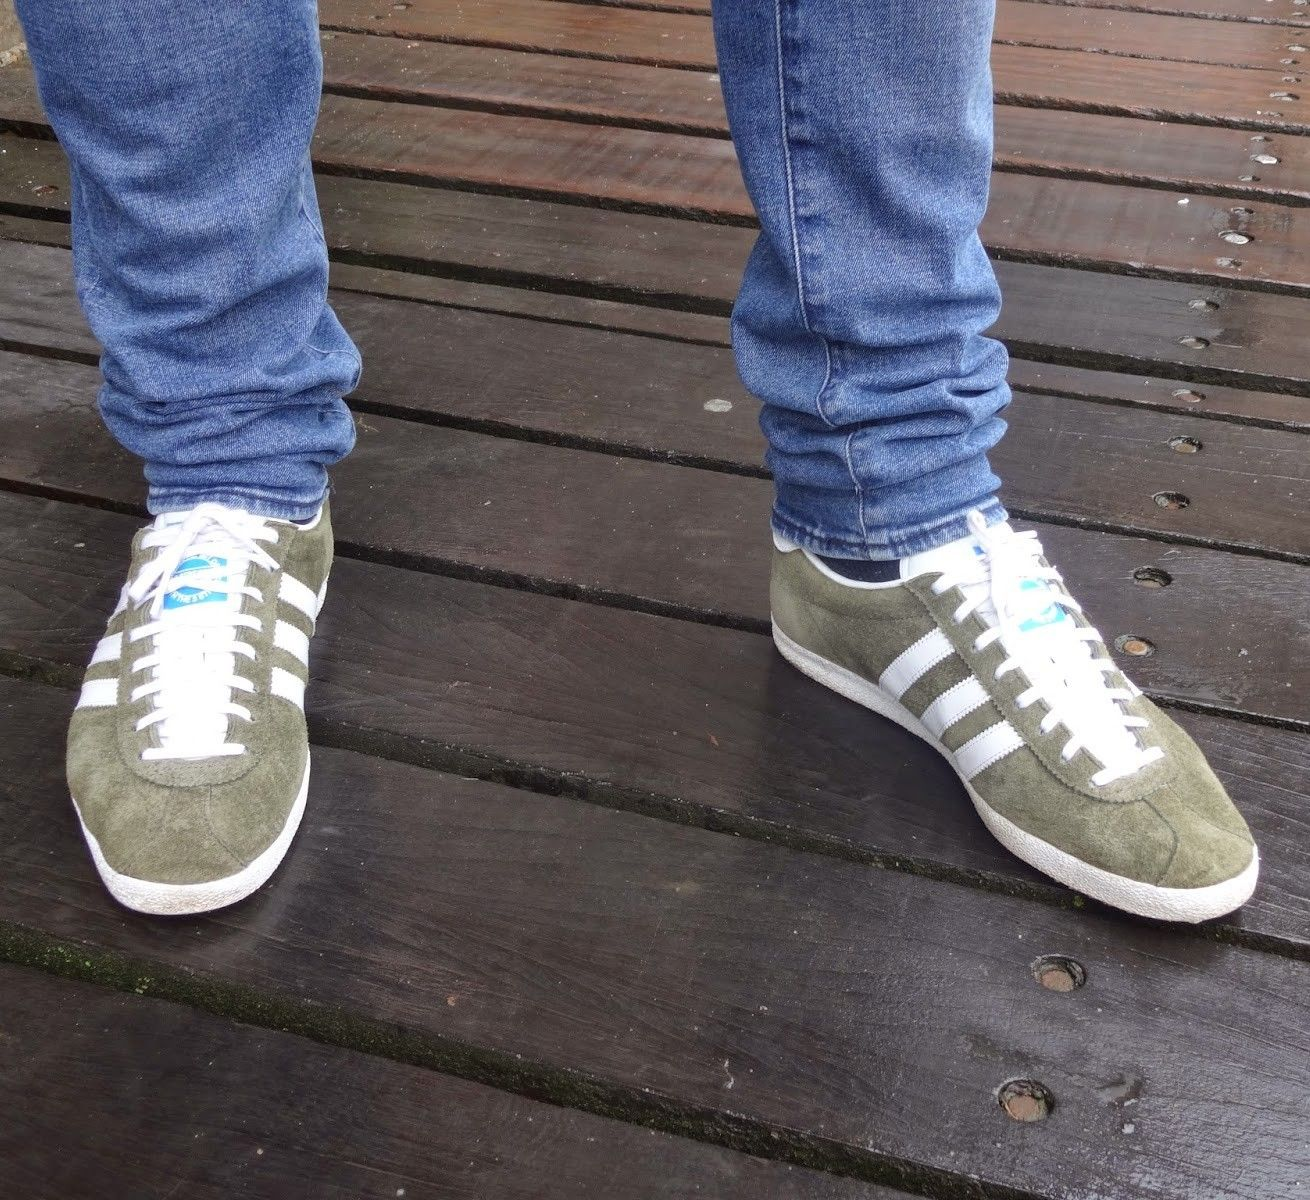 best service 6d0b3 8411c Tent green and white Gazelle on feet on the street. Tent green and white  Gazelle on feet on the street Adidas Og, Football Casuals,